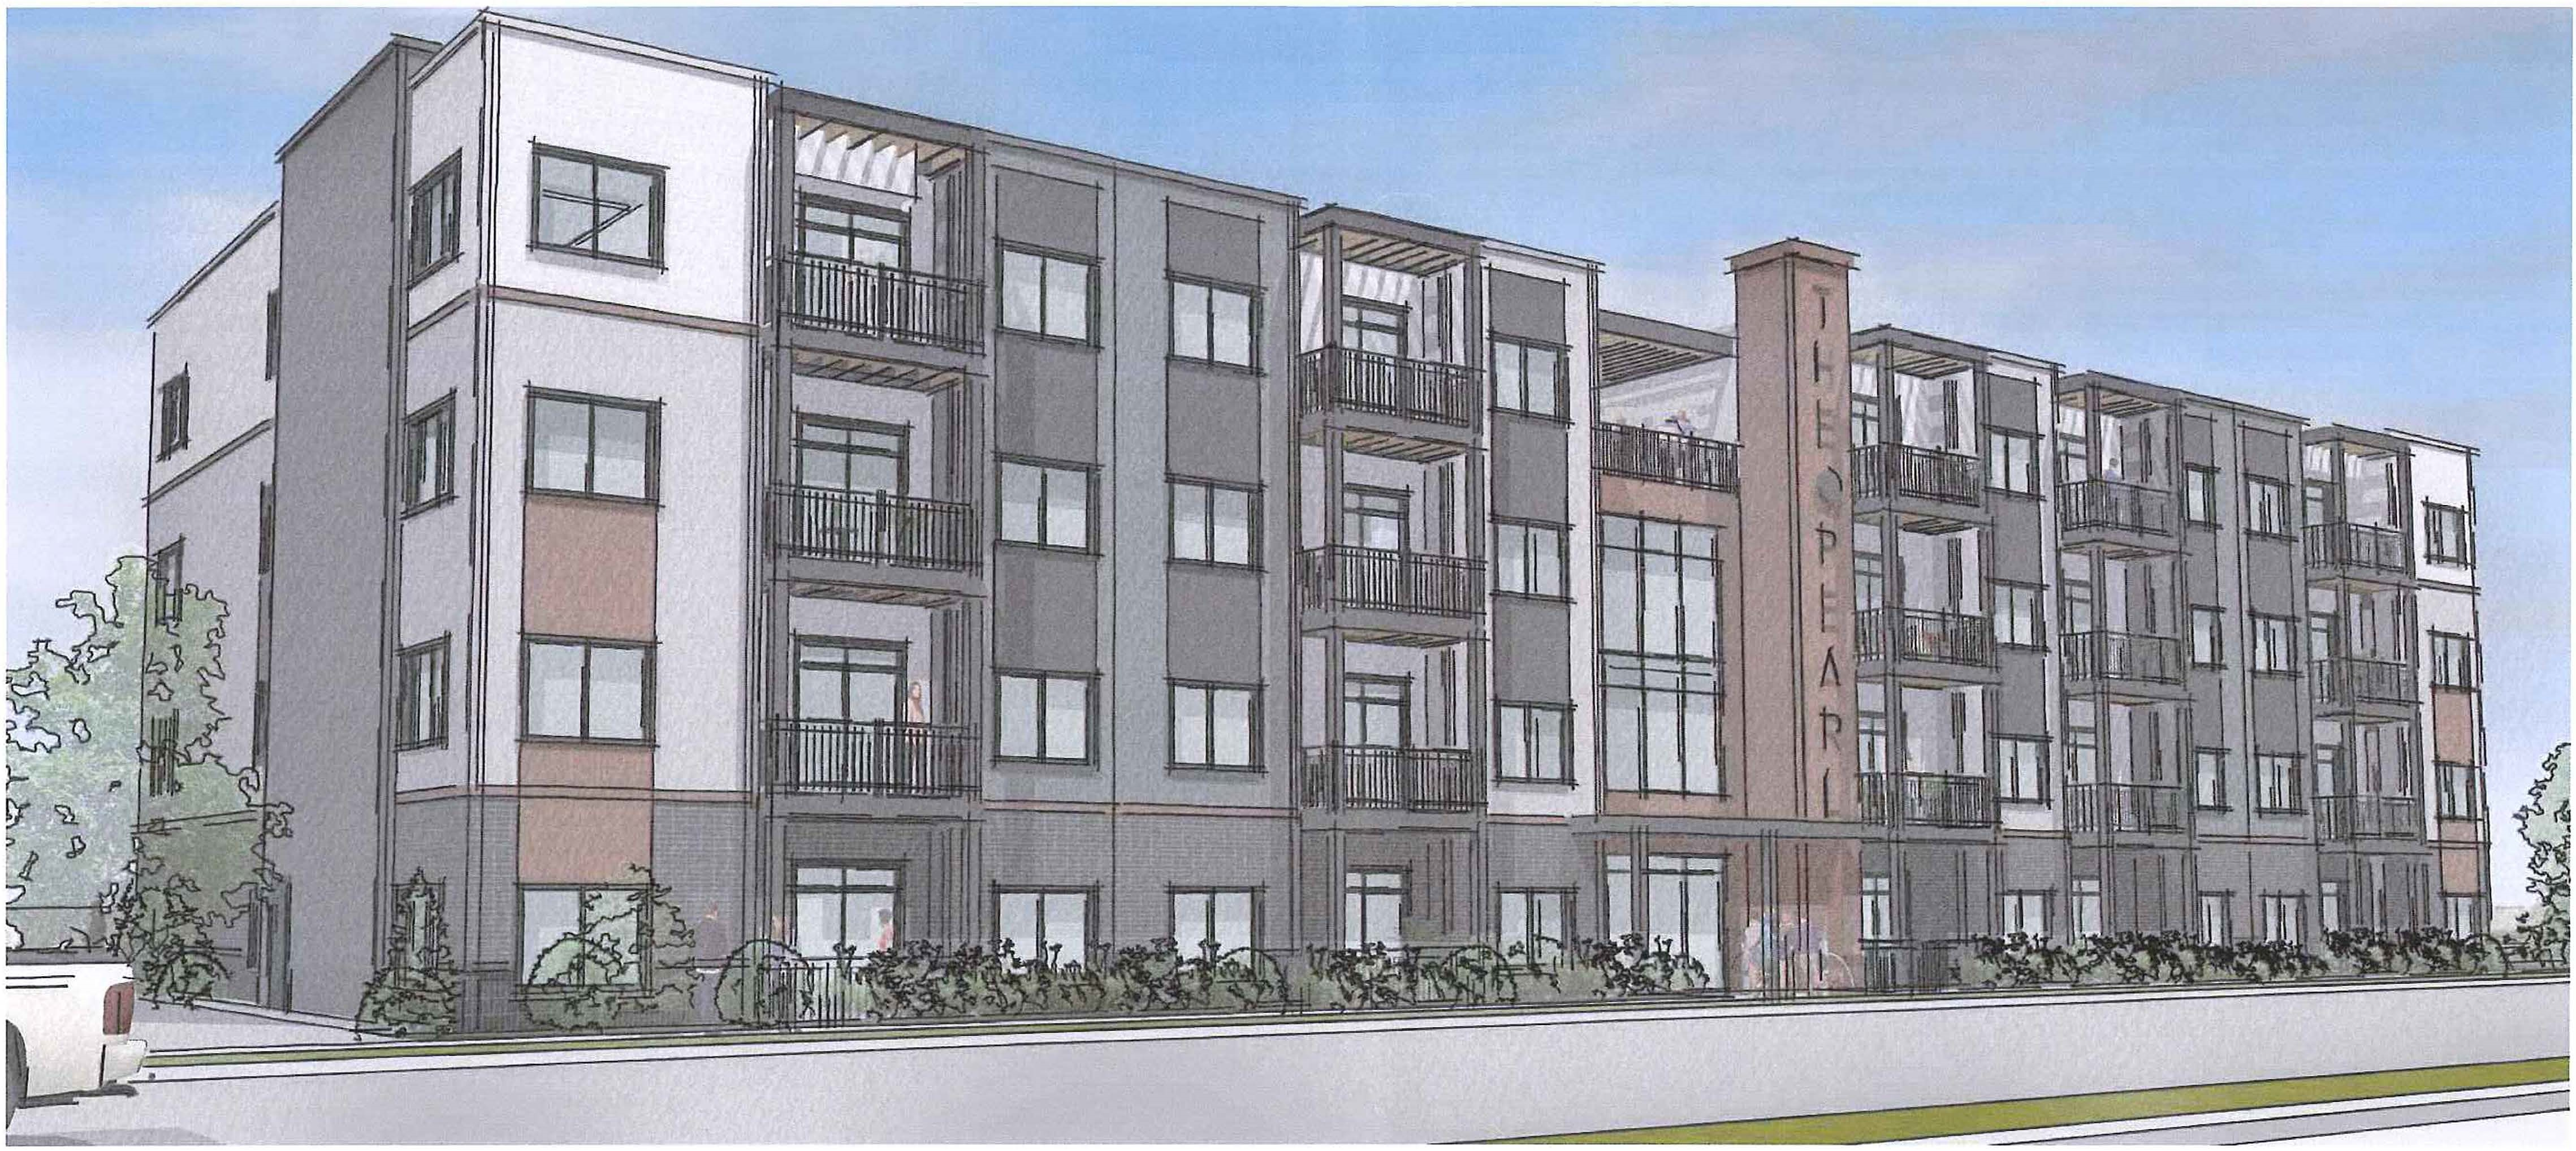 $25M Into Downtown Owatonna in '21